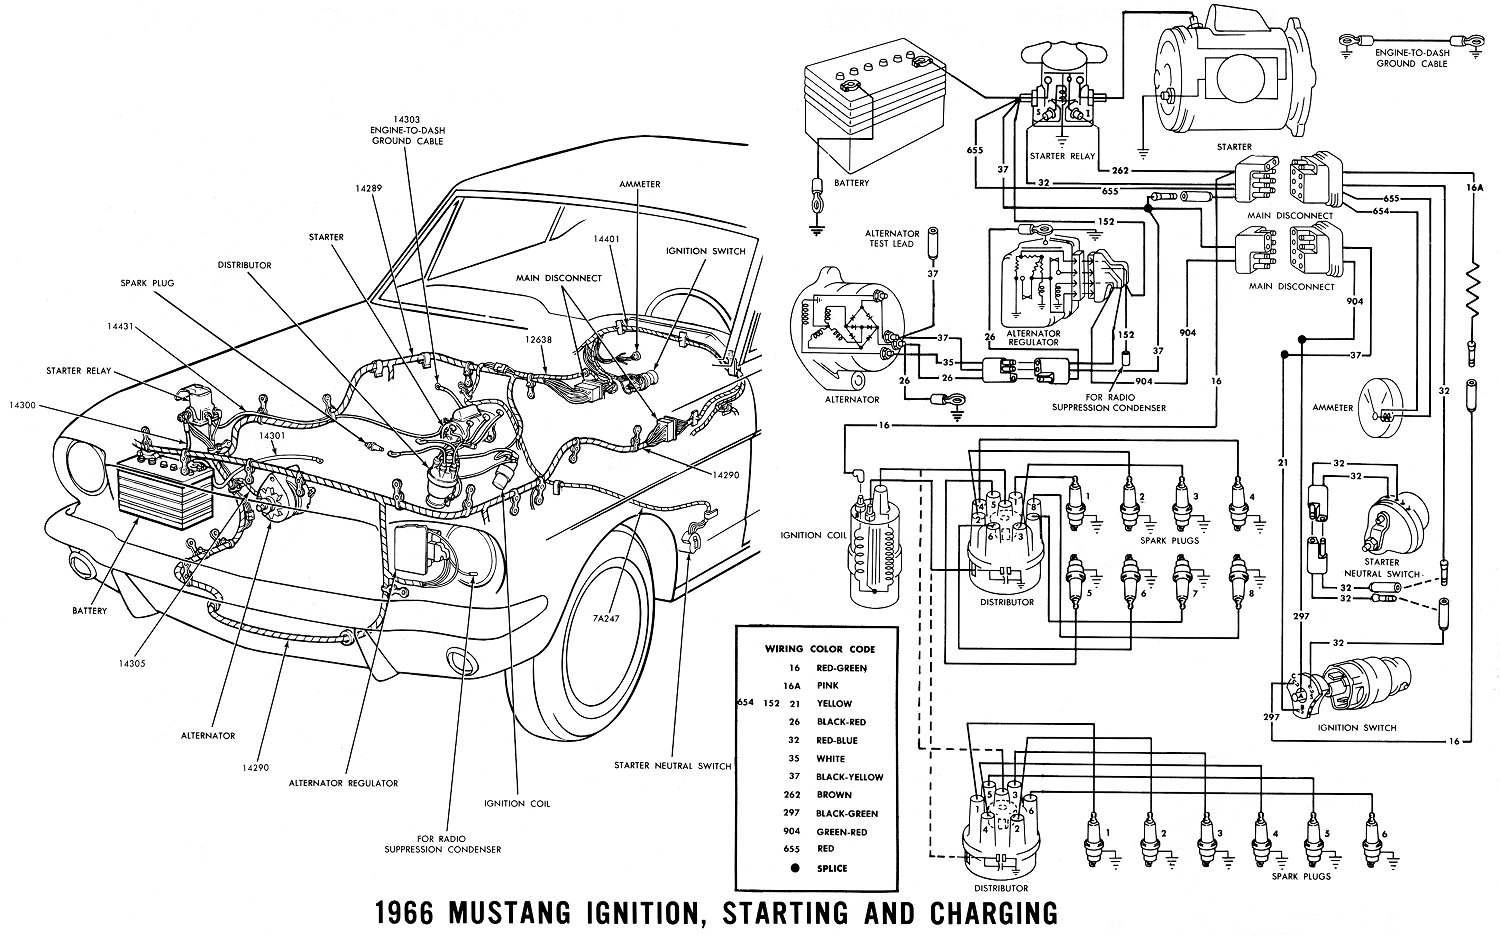 Oliver 66 Wiring Diagram Library 88 1966 Mustang Ignition Starting And Charging Diagrams